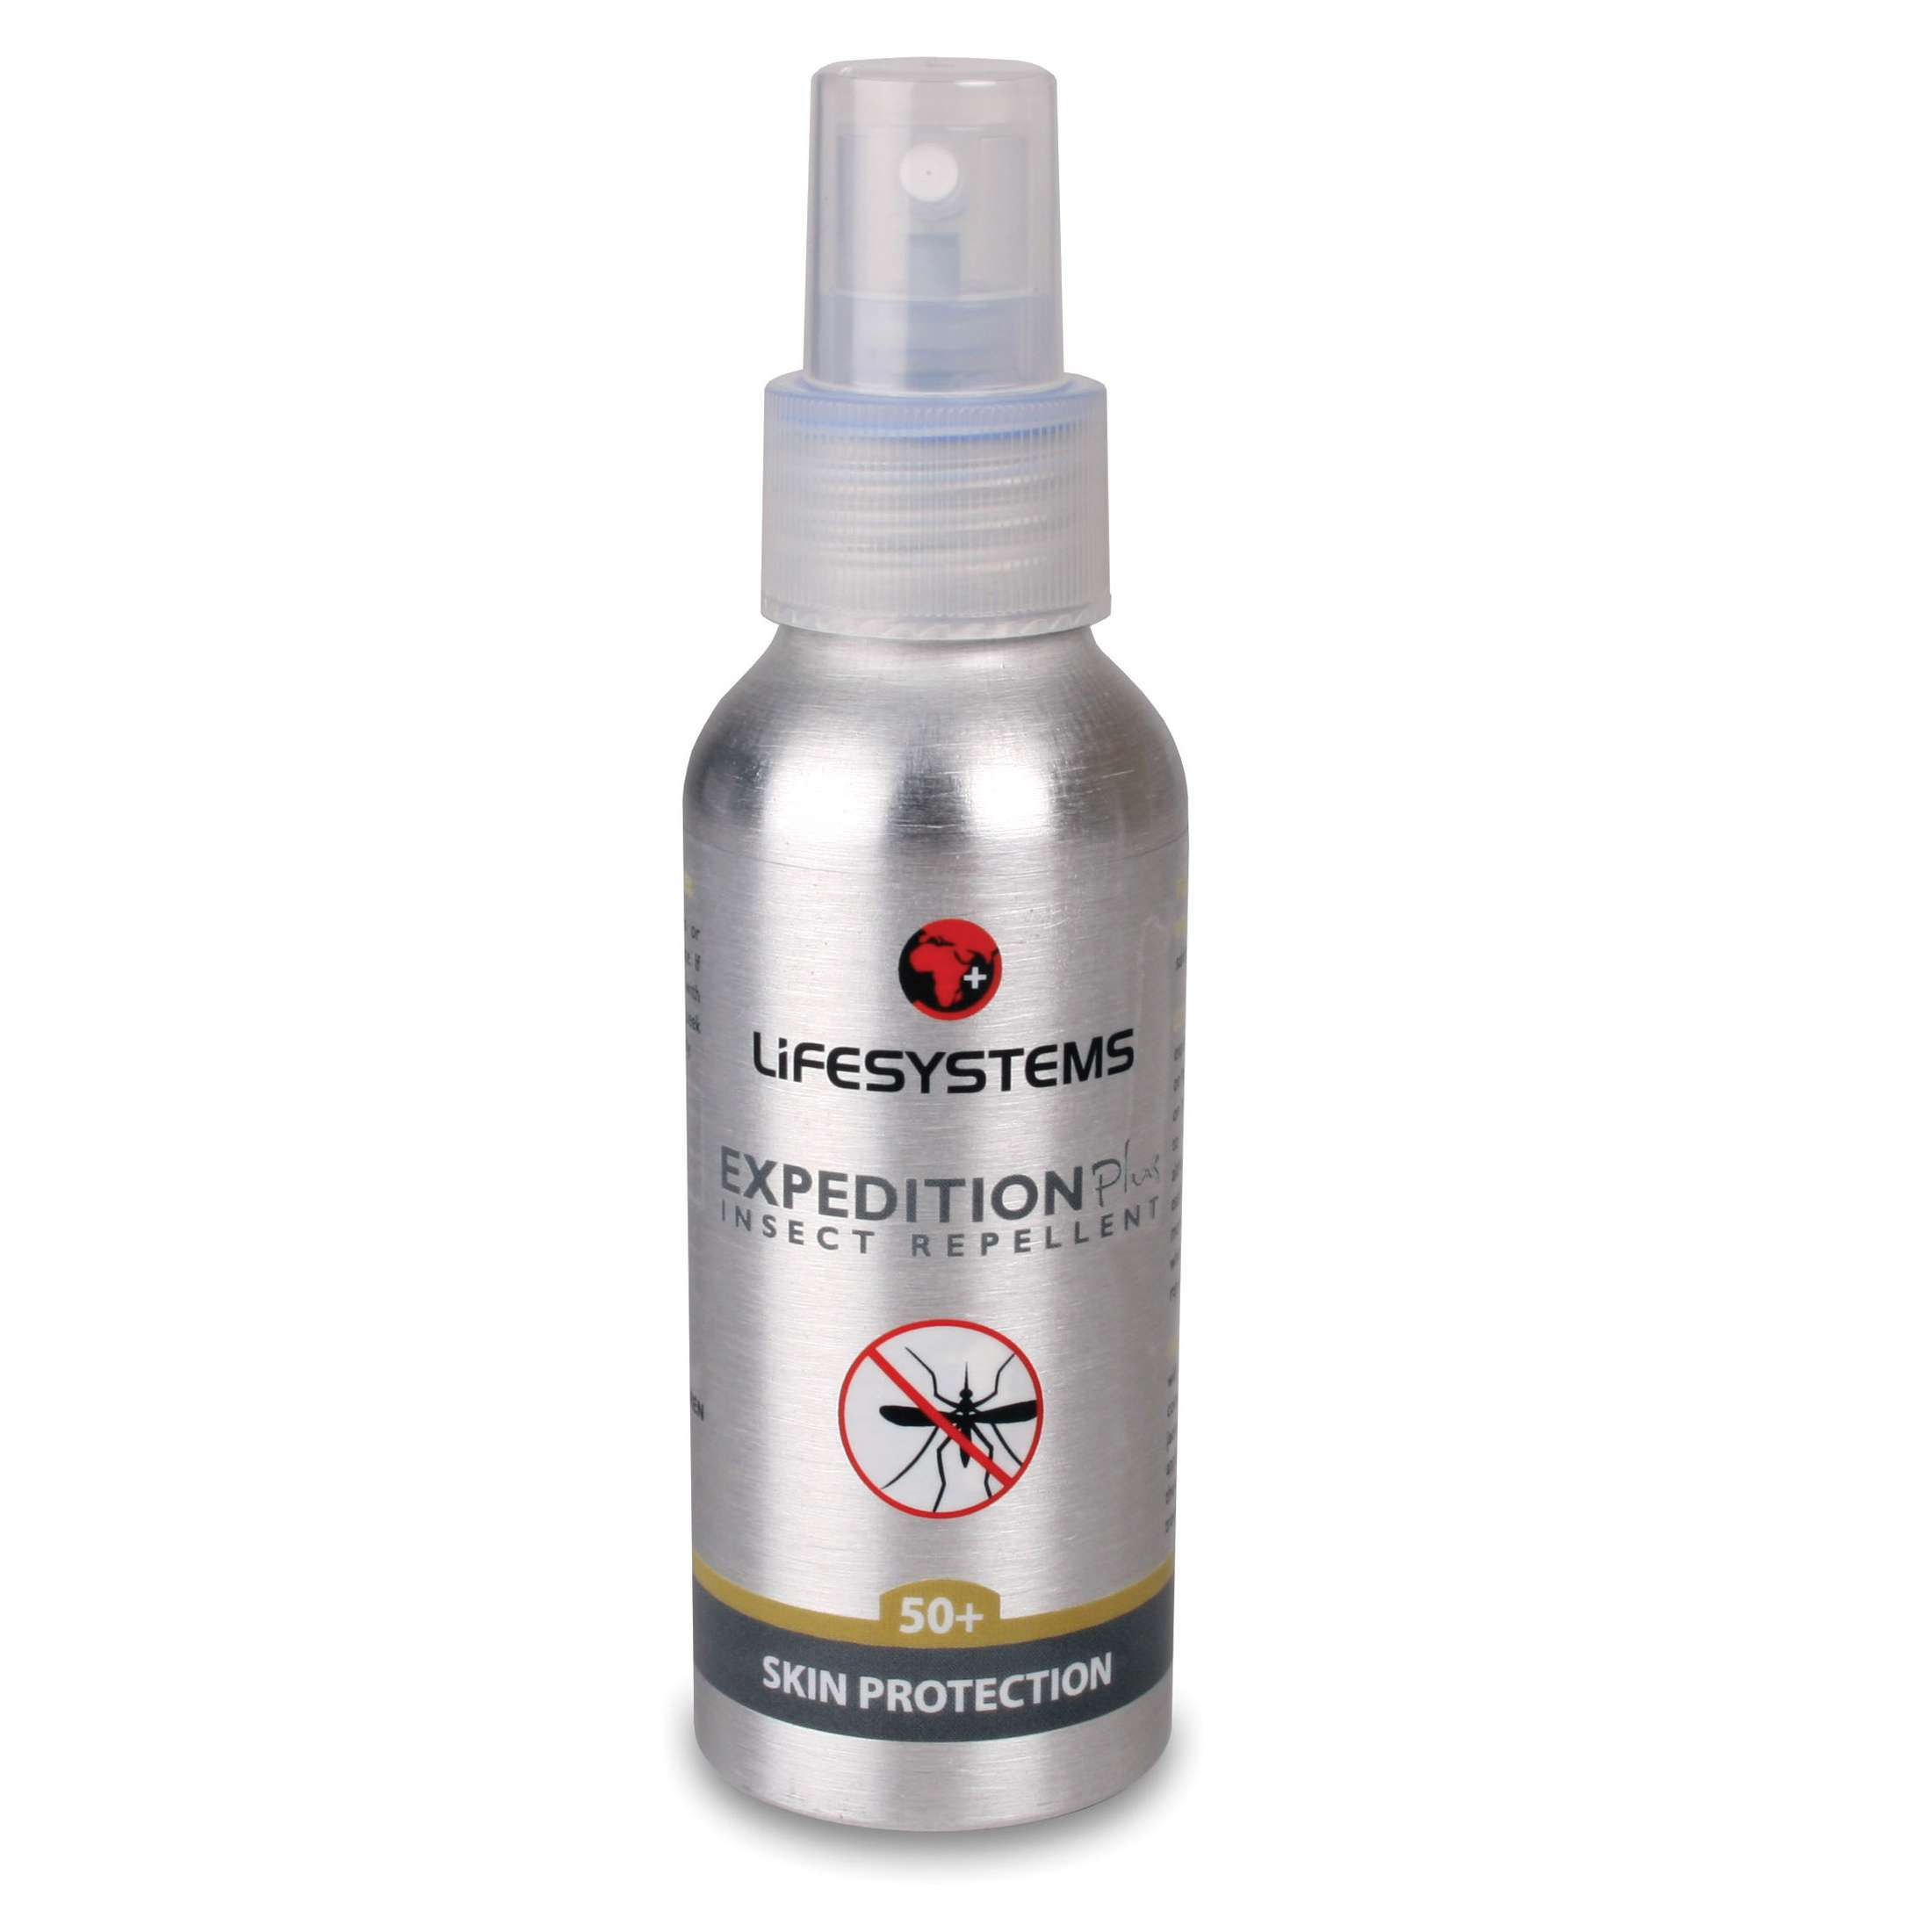 LIFESYSTEMS Expedition 50+ Spray Insect Repellent 100 ml